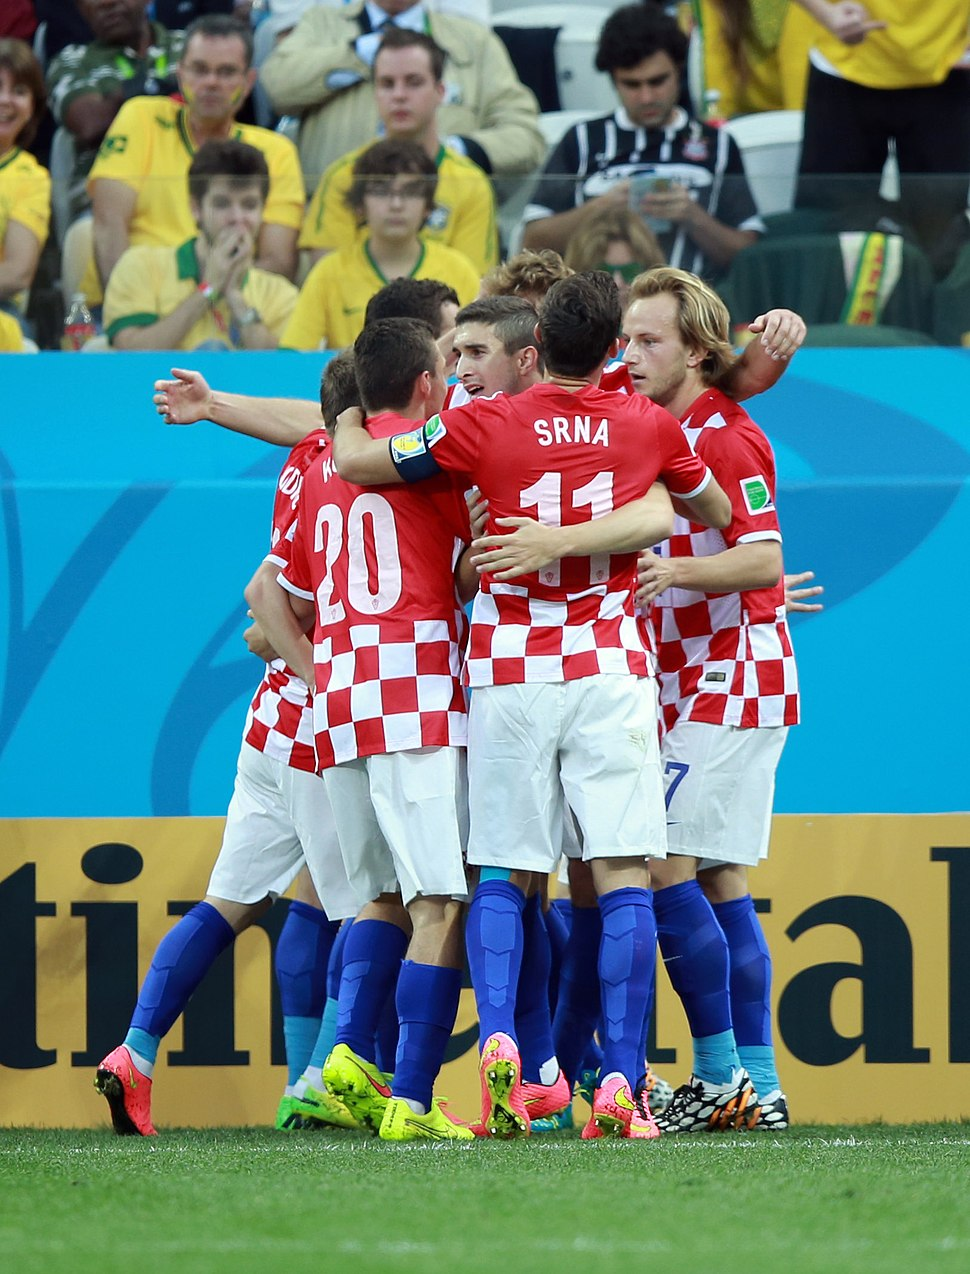 Brazil and Croatia match at the FIFA World Cup 2014-06-12 (50)